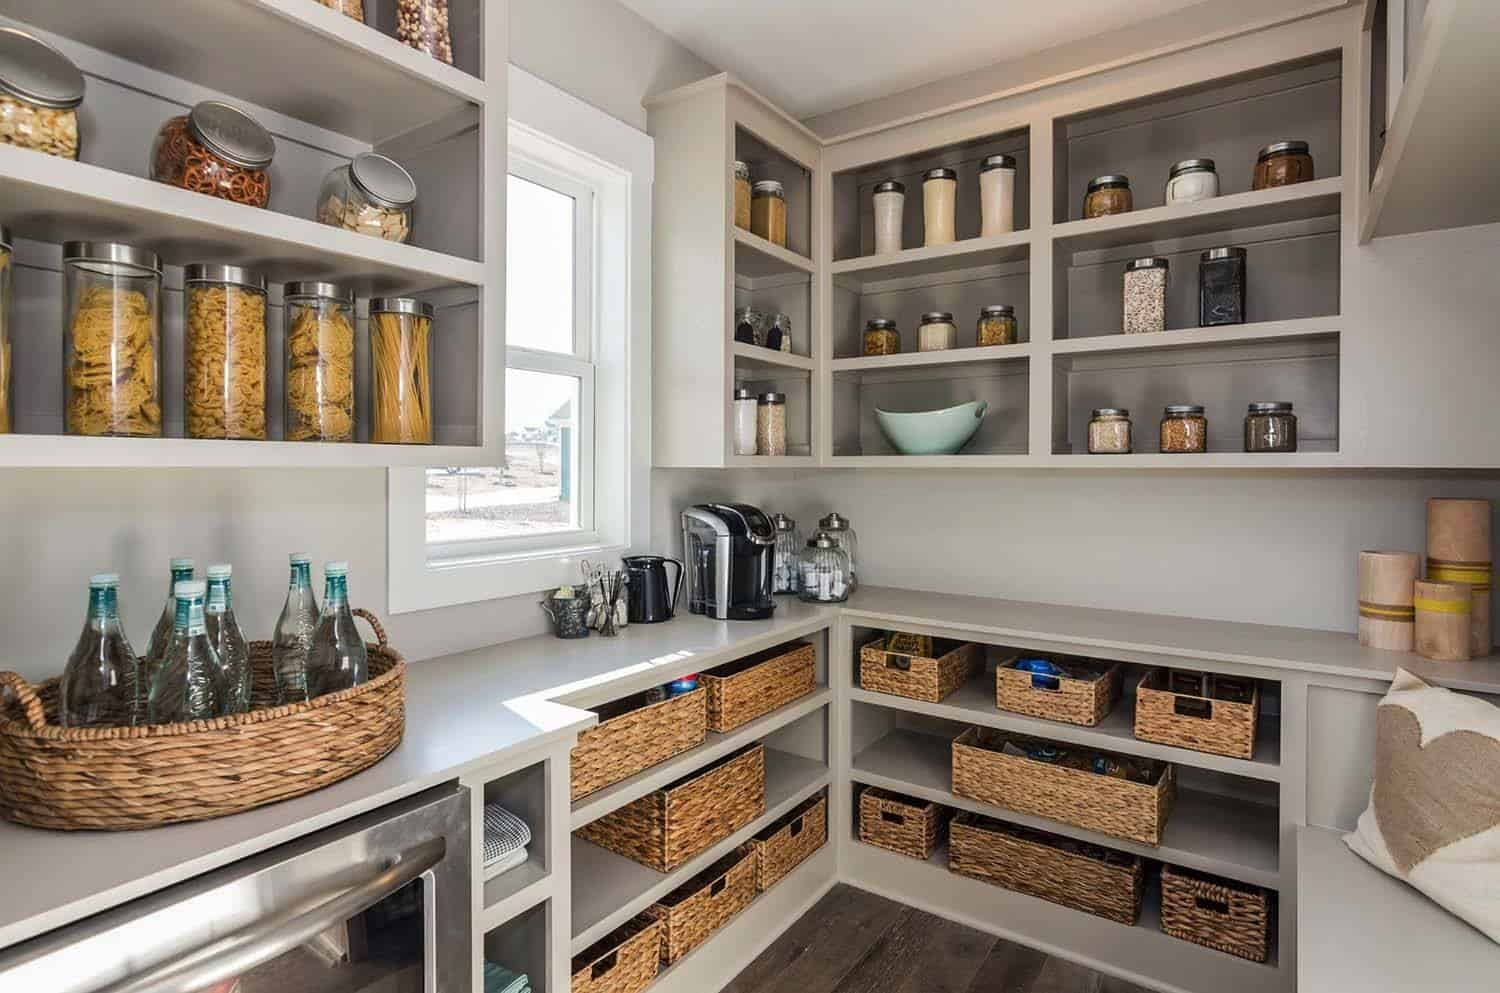 Design Pantry Ideas 35 clever ideas to help organize your kitchen pantry 30 1 kindesign